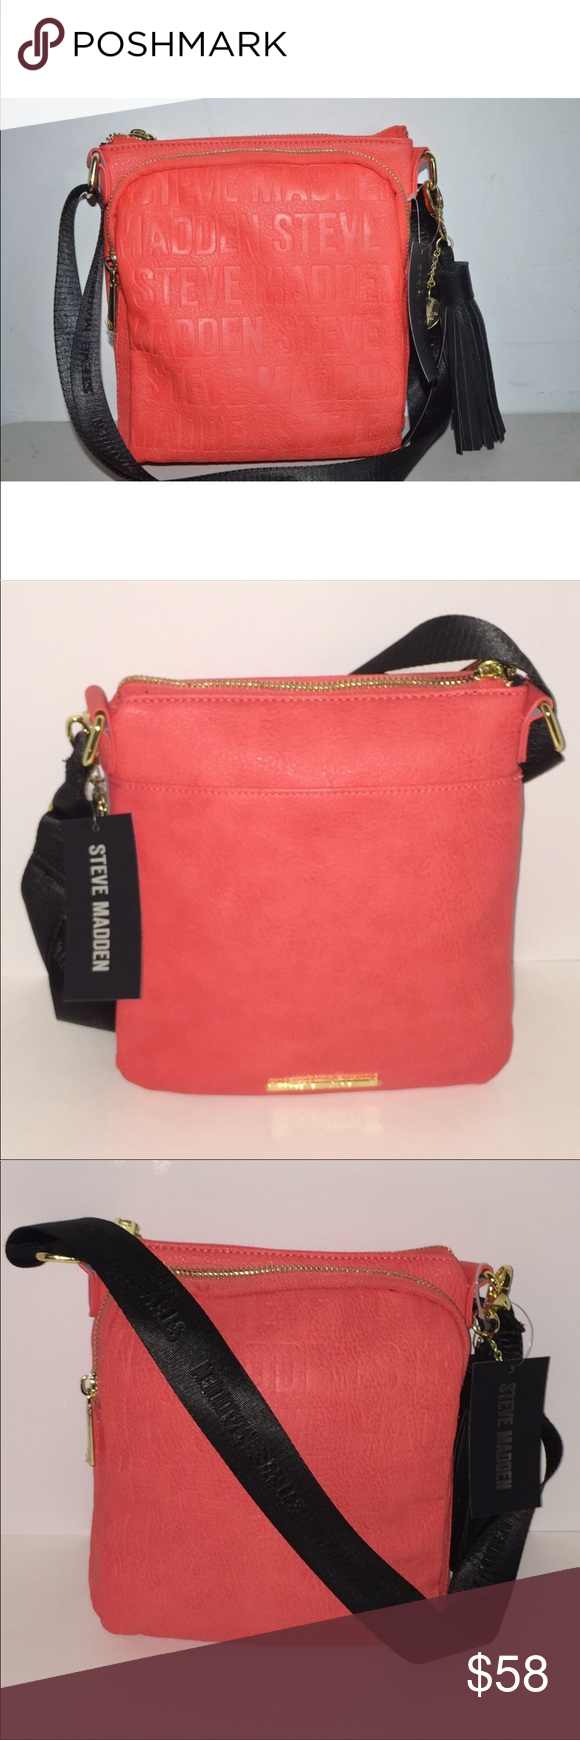 31fecc9634 Authentic SteveMadden BGLAM LOGO crossbody bag Steve Madden BGLAM LOGO coral  crossbody bag With detachable tassel